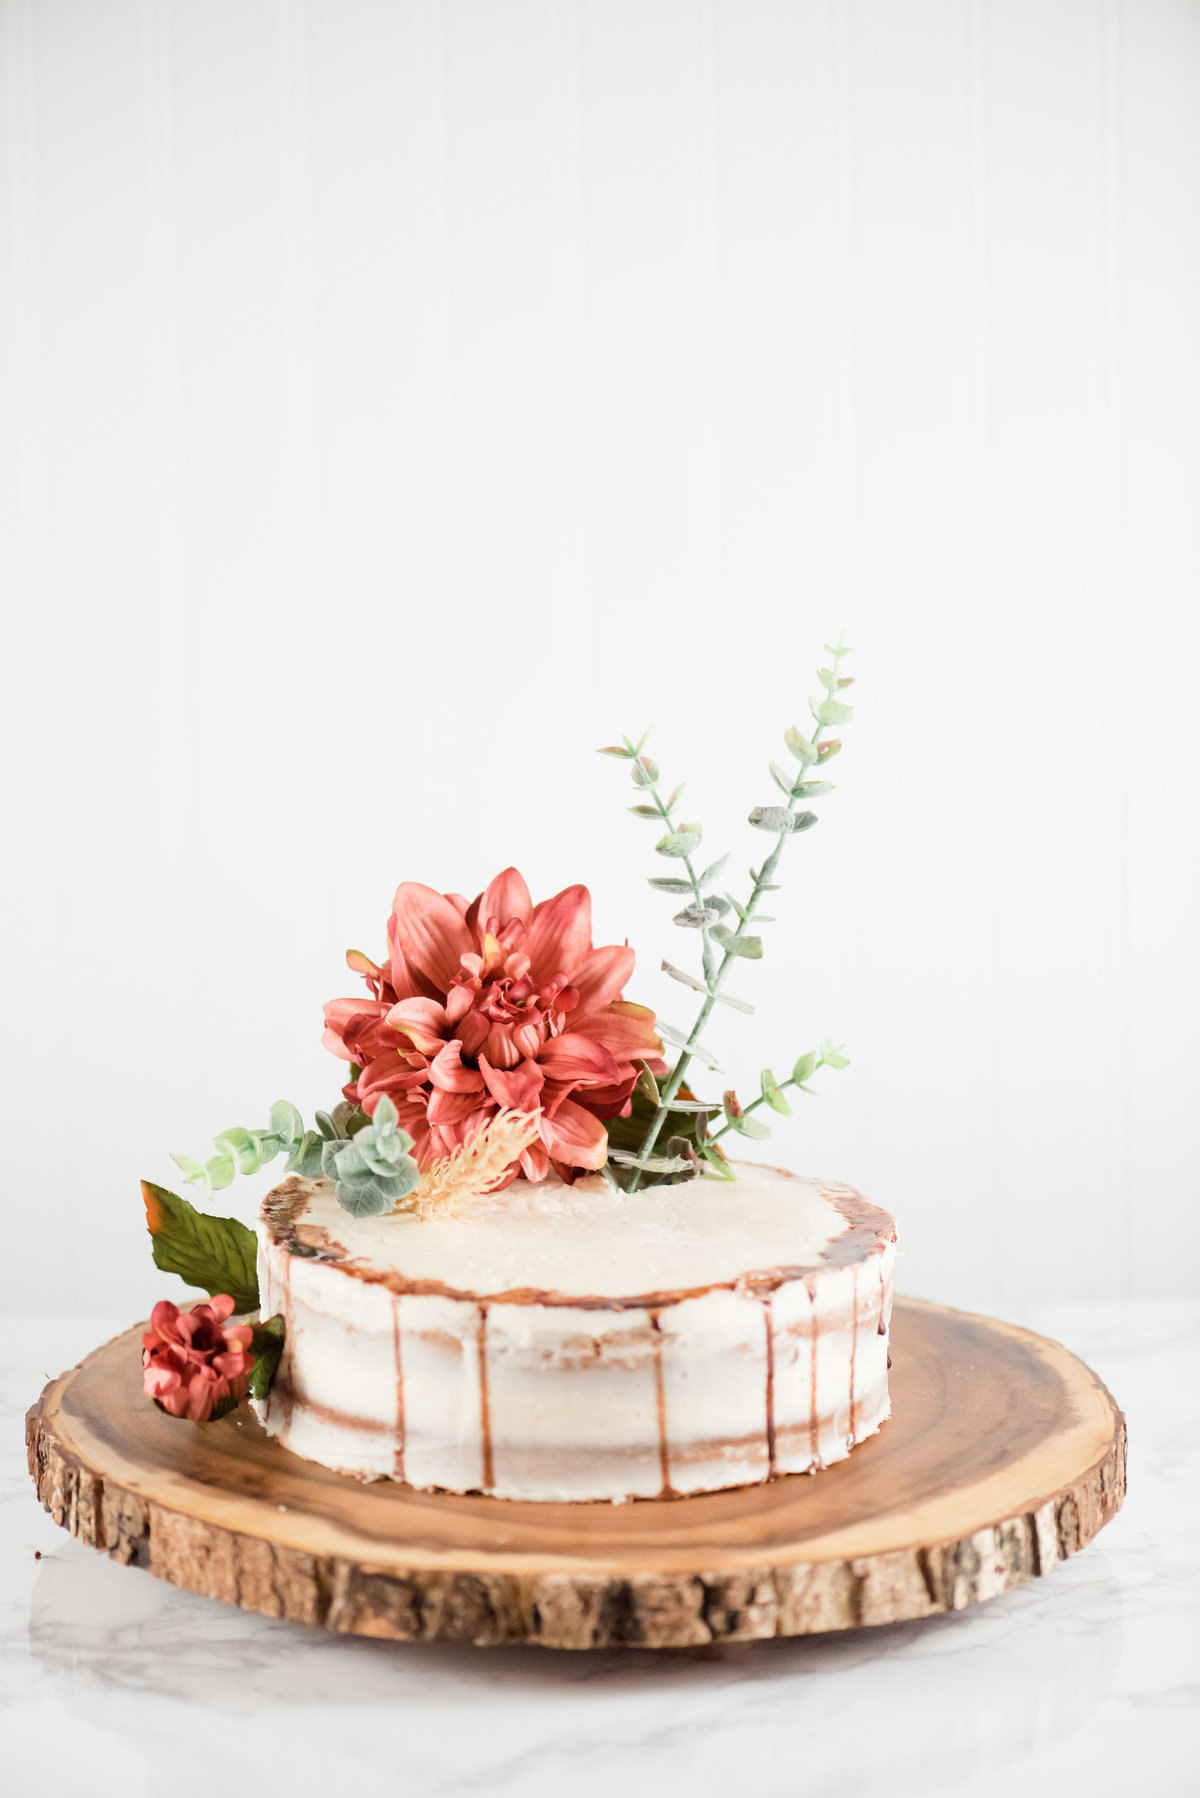 FAVORITES-2017-12-27ColleenMurphysSweetDreamsBakingBrandSession239330-45